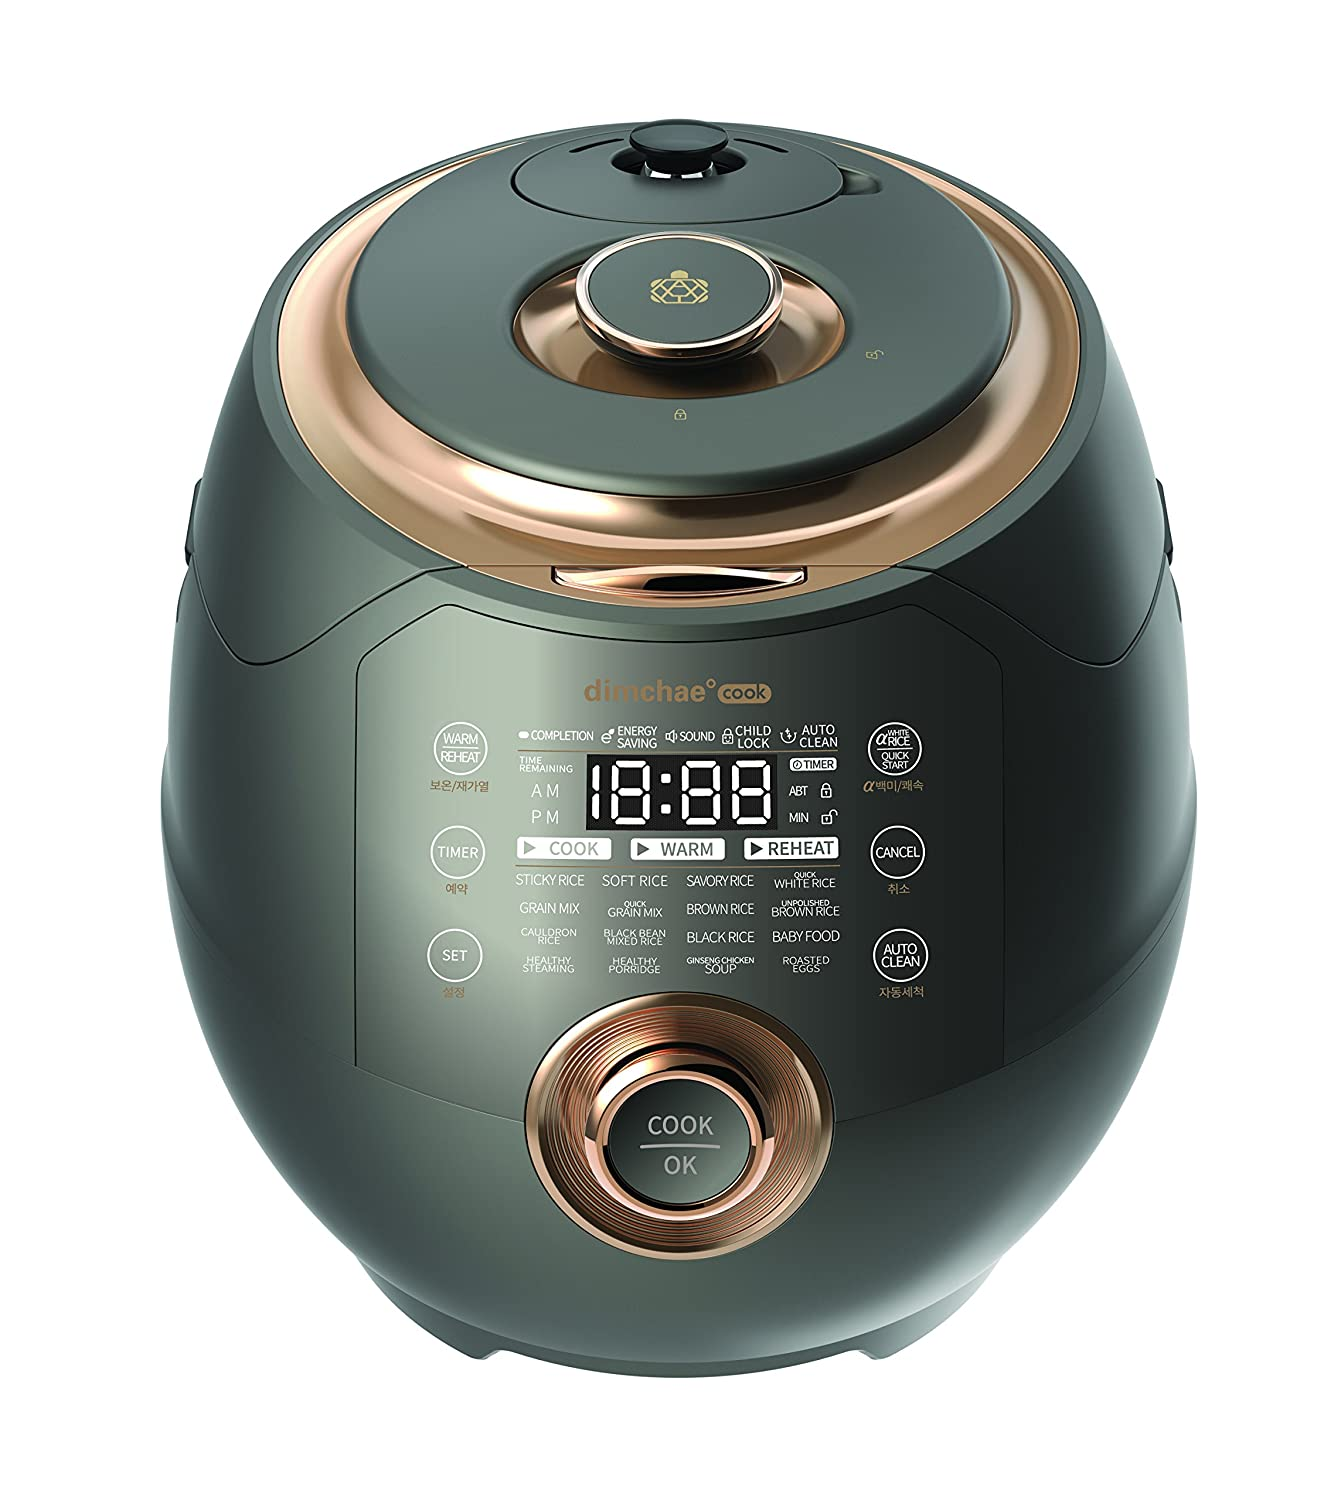 Dimchae Cook Induction Heating Pressure Rice Cooker 10 Cup Bronze